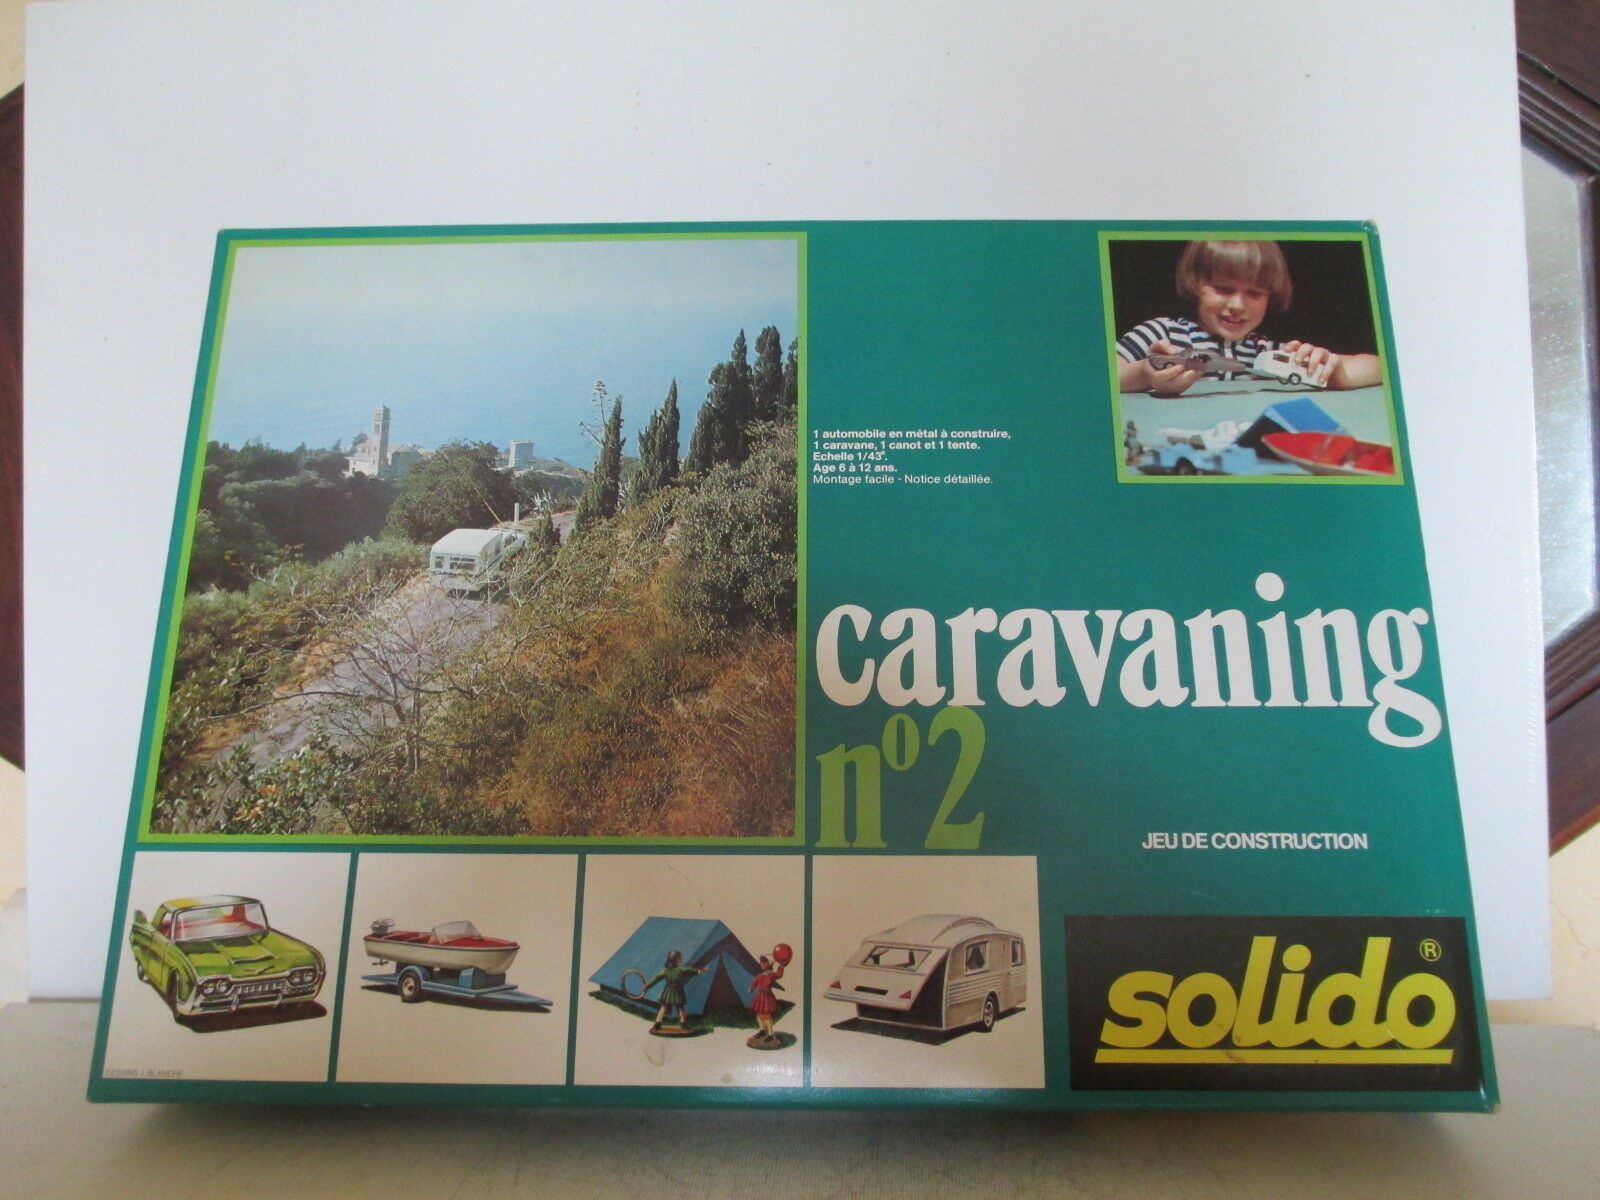 Solido caravaning detachable 434 boxed 2 mib rare never opened never opened